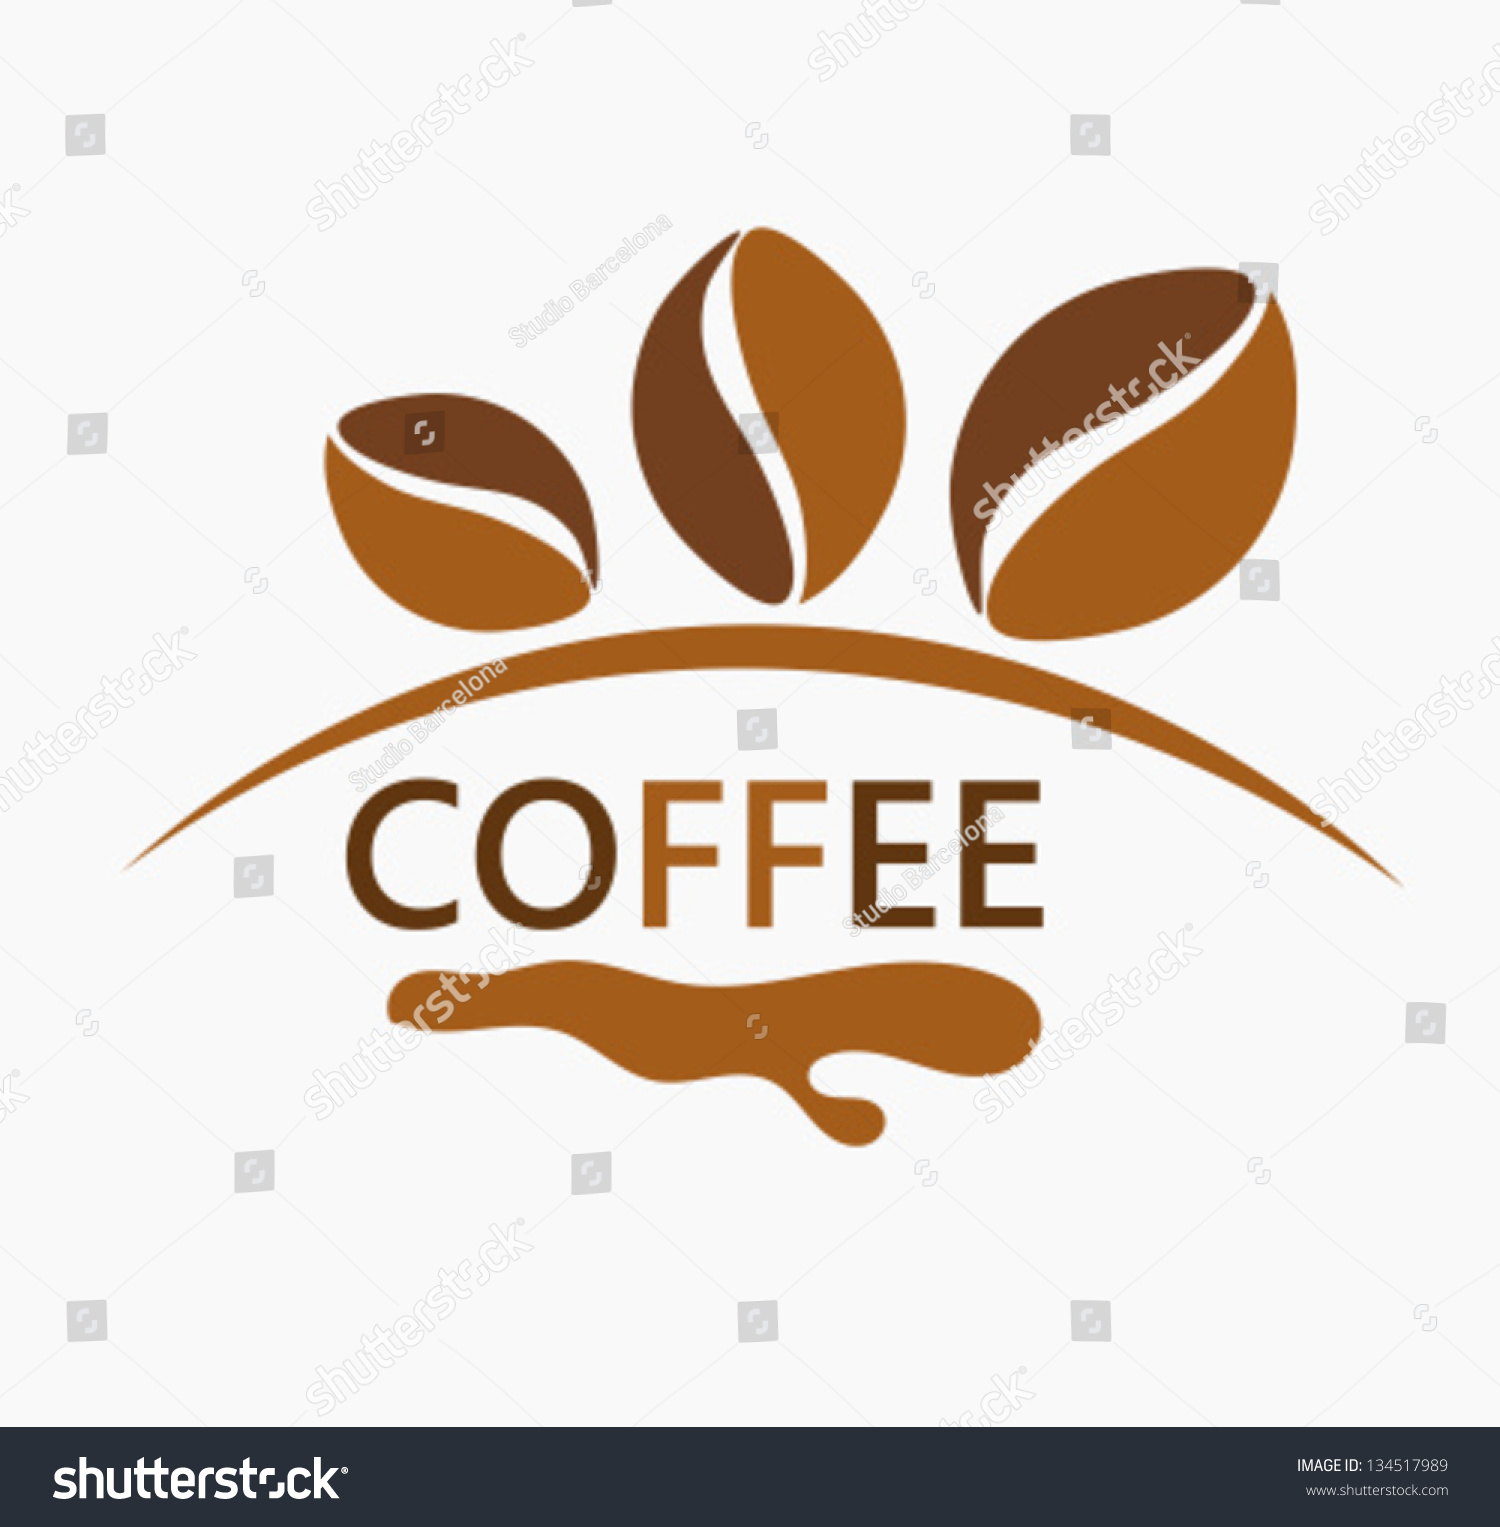 Are Espresso Beans And Coffee Beans The Same